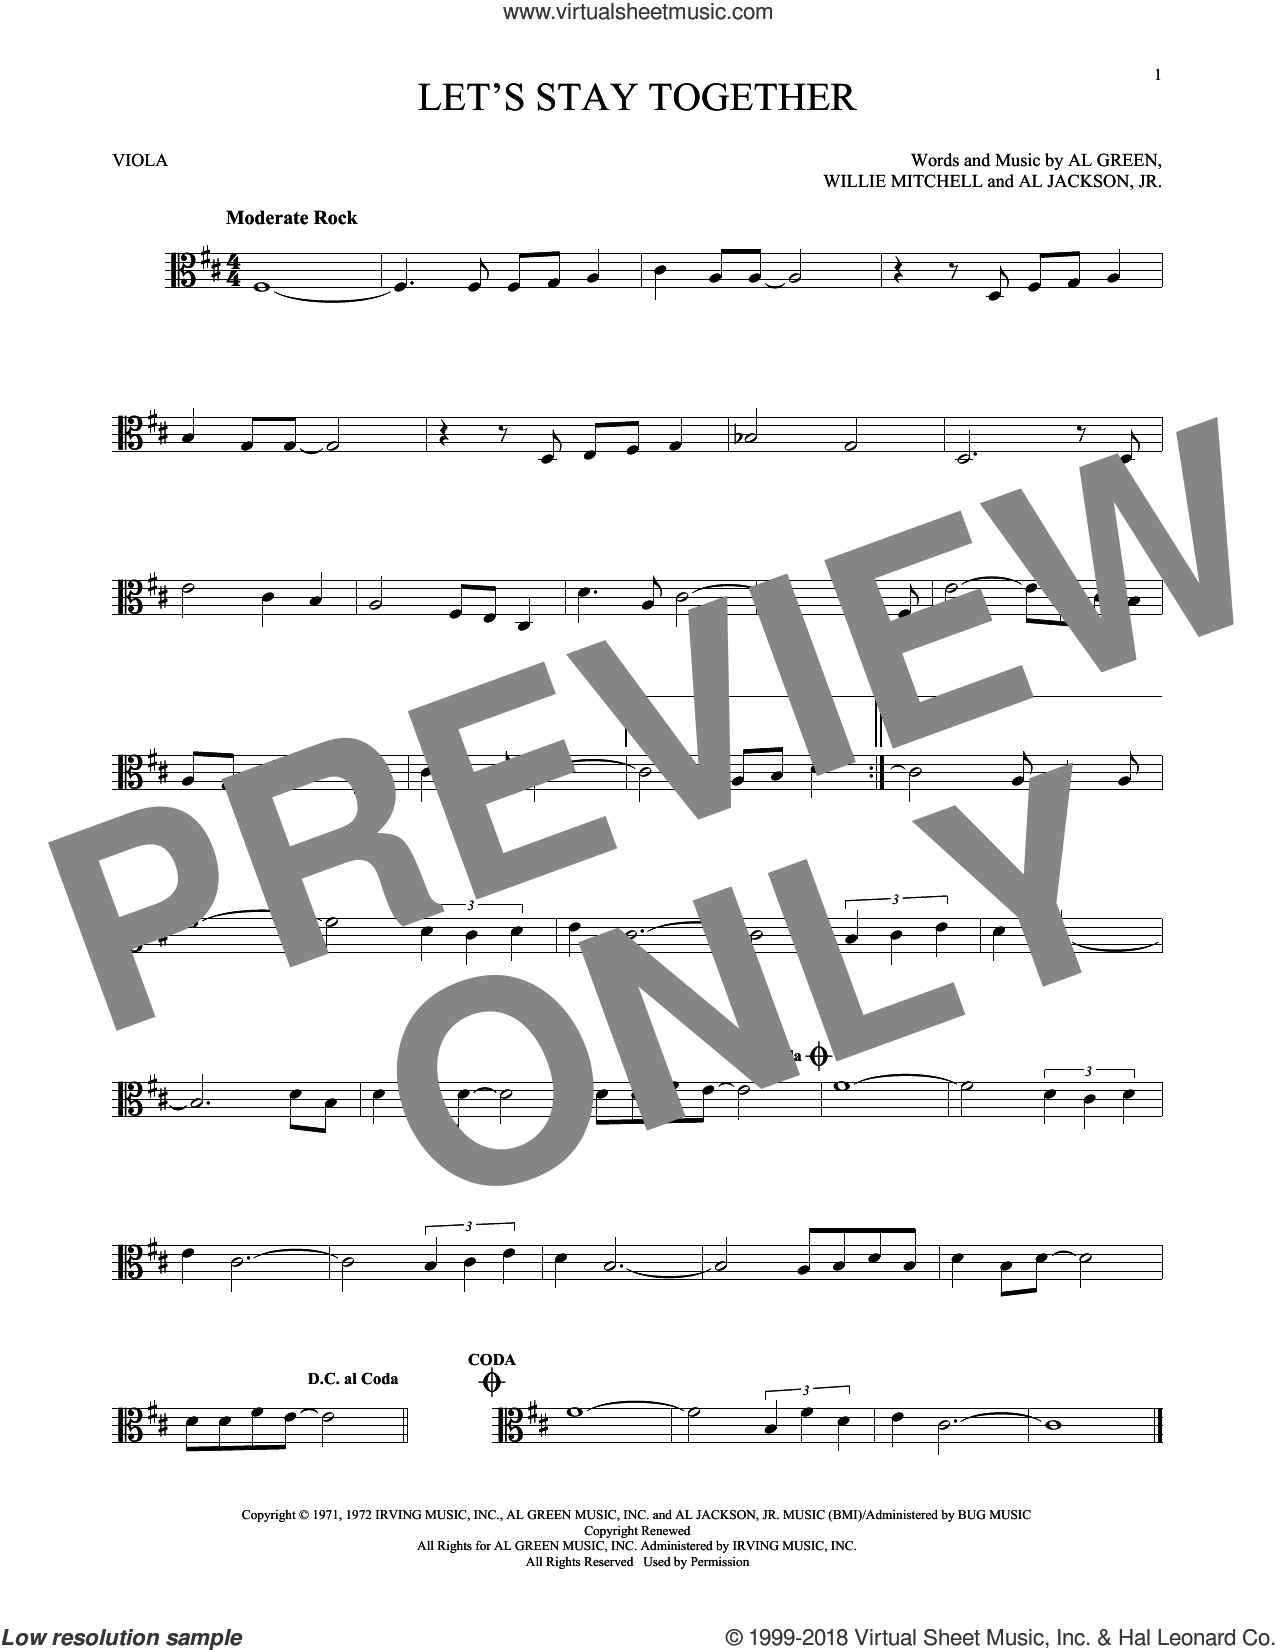 Let's Stay Together sheet music for viola solo by Al Green, Al Jackson, Jr. and Willie Mitchell, intermediate skill level